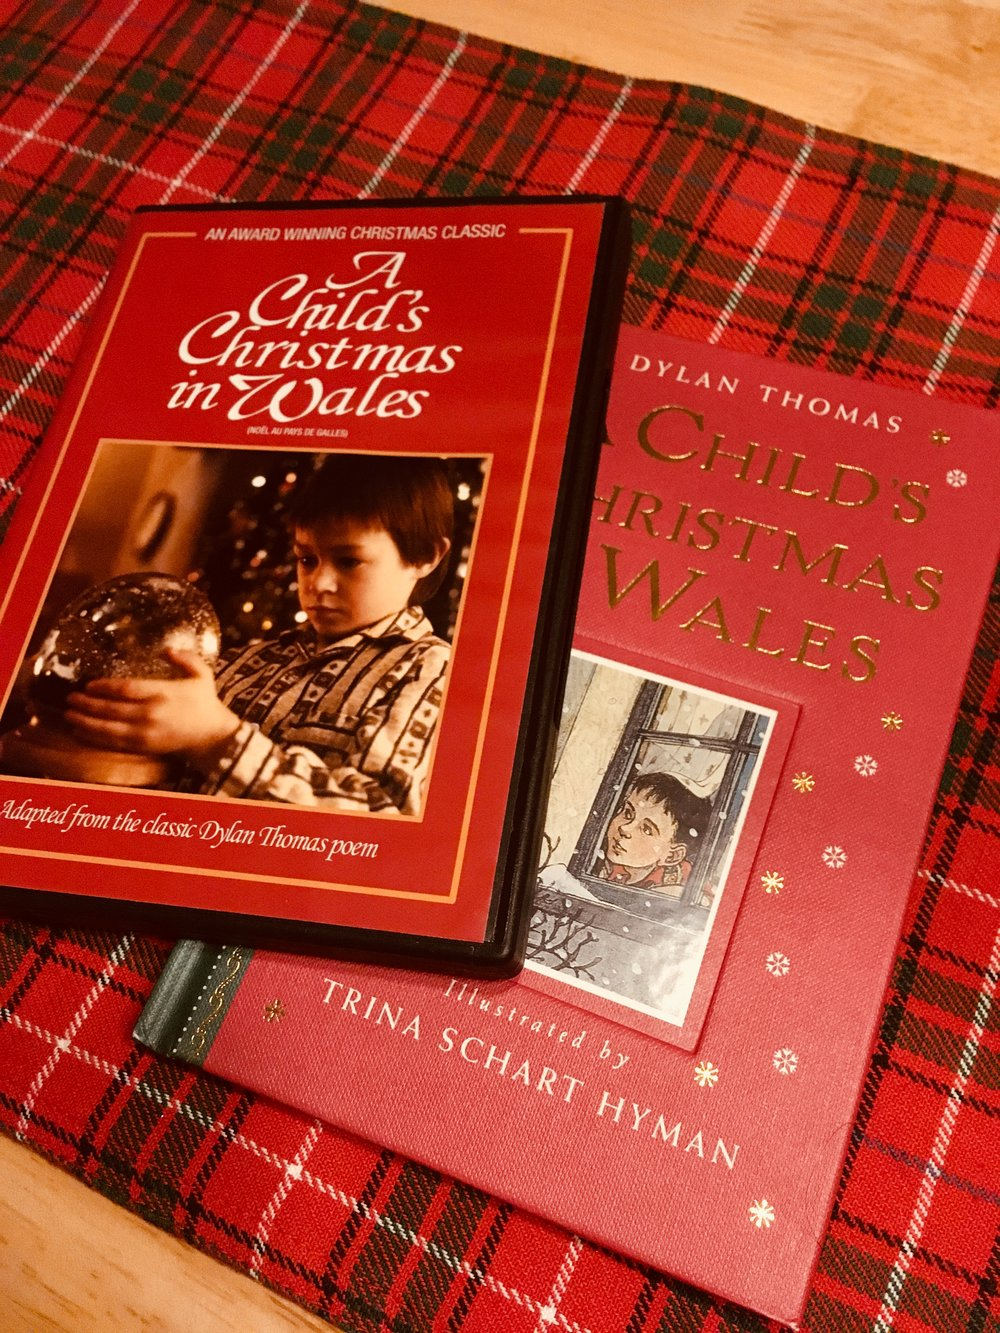 My favorites! A beautiful film, and a beautifully-illustrated book to match. Hello, stocking stuffers.